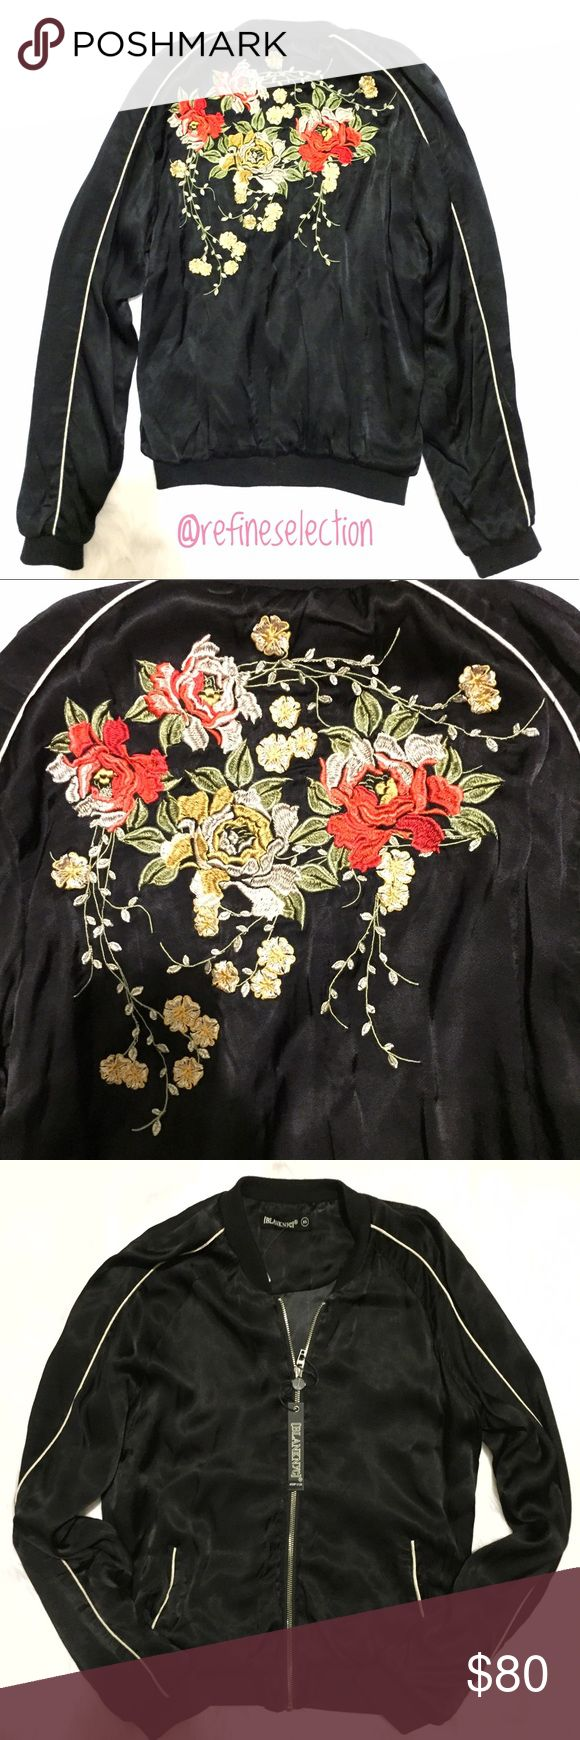 BlankNYC Rose Embroidered Black Bomber Jacket Brand new with tags, available in women's size XS and Small. Retails for $128! This Blank NYC Rose Embroidered Black Bomber Jacket is stunning. Love the highly detailed red and gold roses embroidered on the back. This jacket feels silky smooth, like satin. The white piping along both sleeves and edges of the two front pockets adds the perfect vintage feel. Lined. Shell is 52% Rayon, 48% Viscose. Lining is 100% Polyester. Blank NYC Jackets & Coats